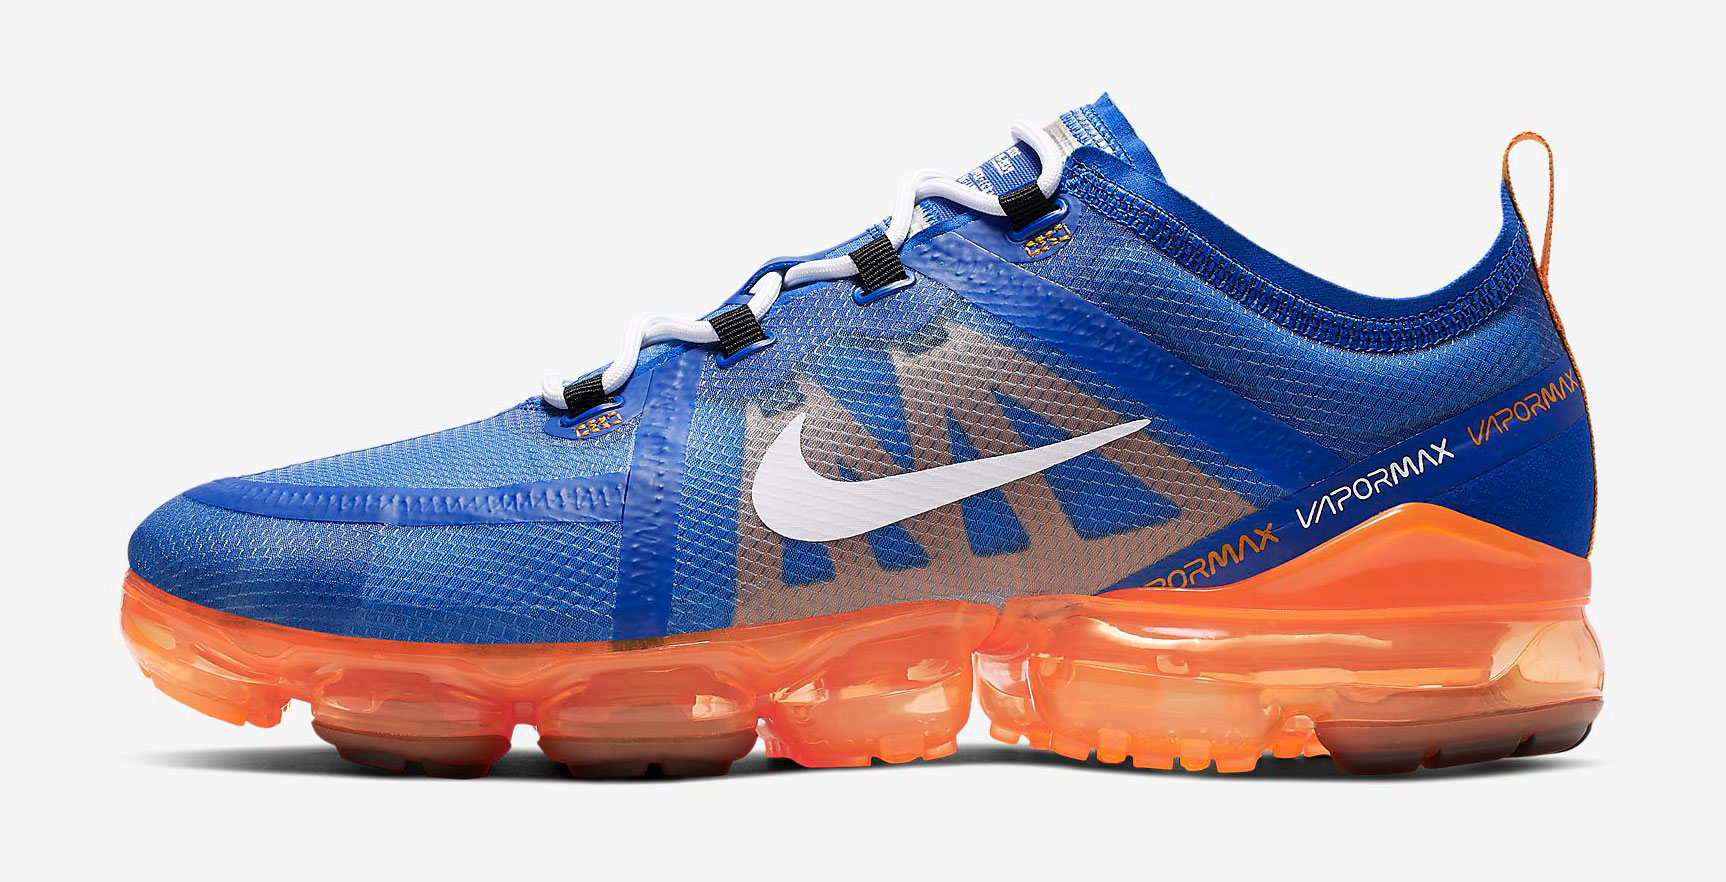 nike-air-vapormax-2019-racer-blue-orange-release-date-where-to-buy